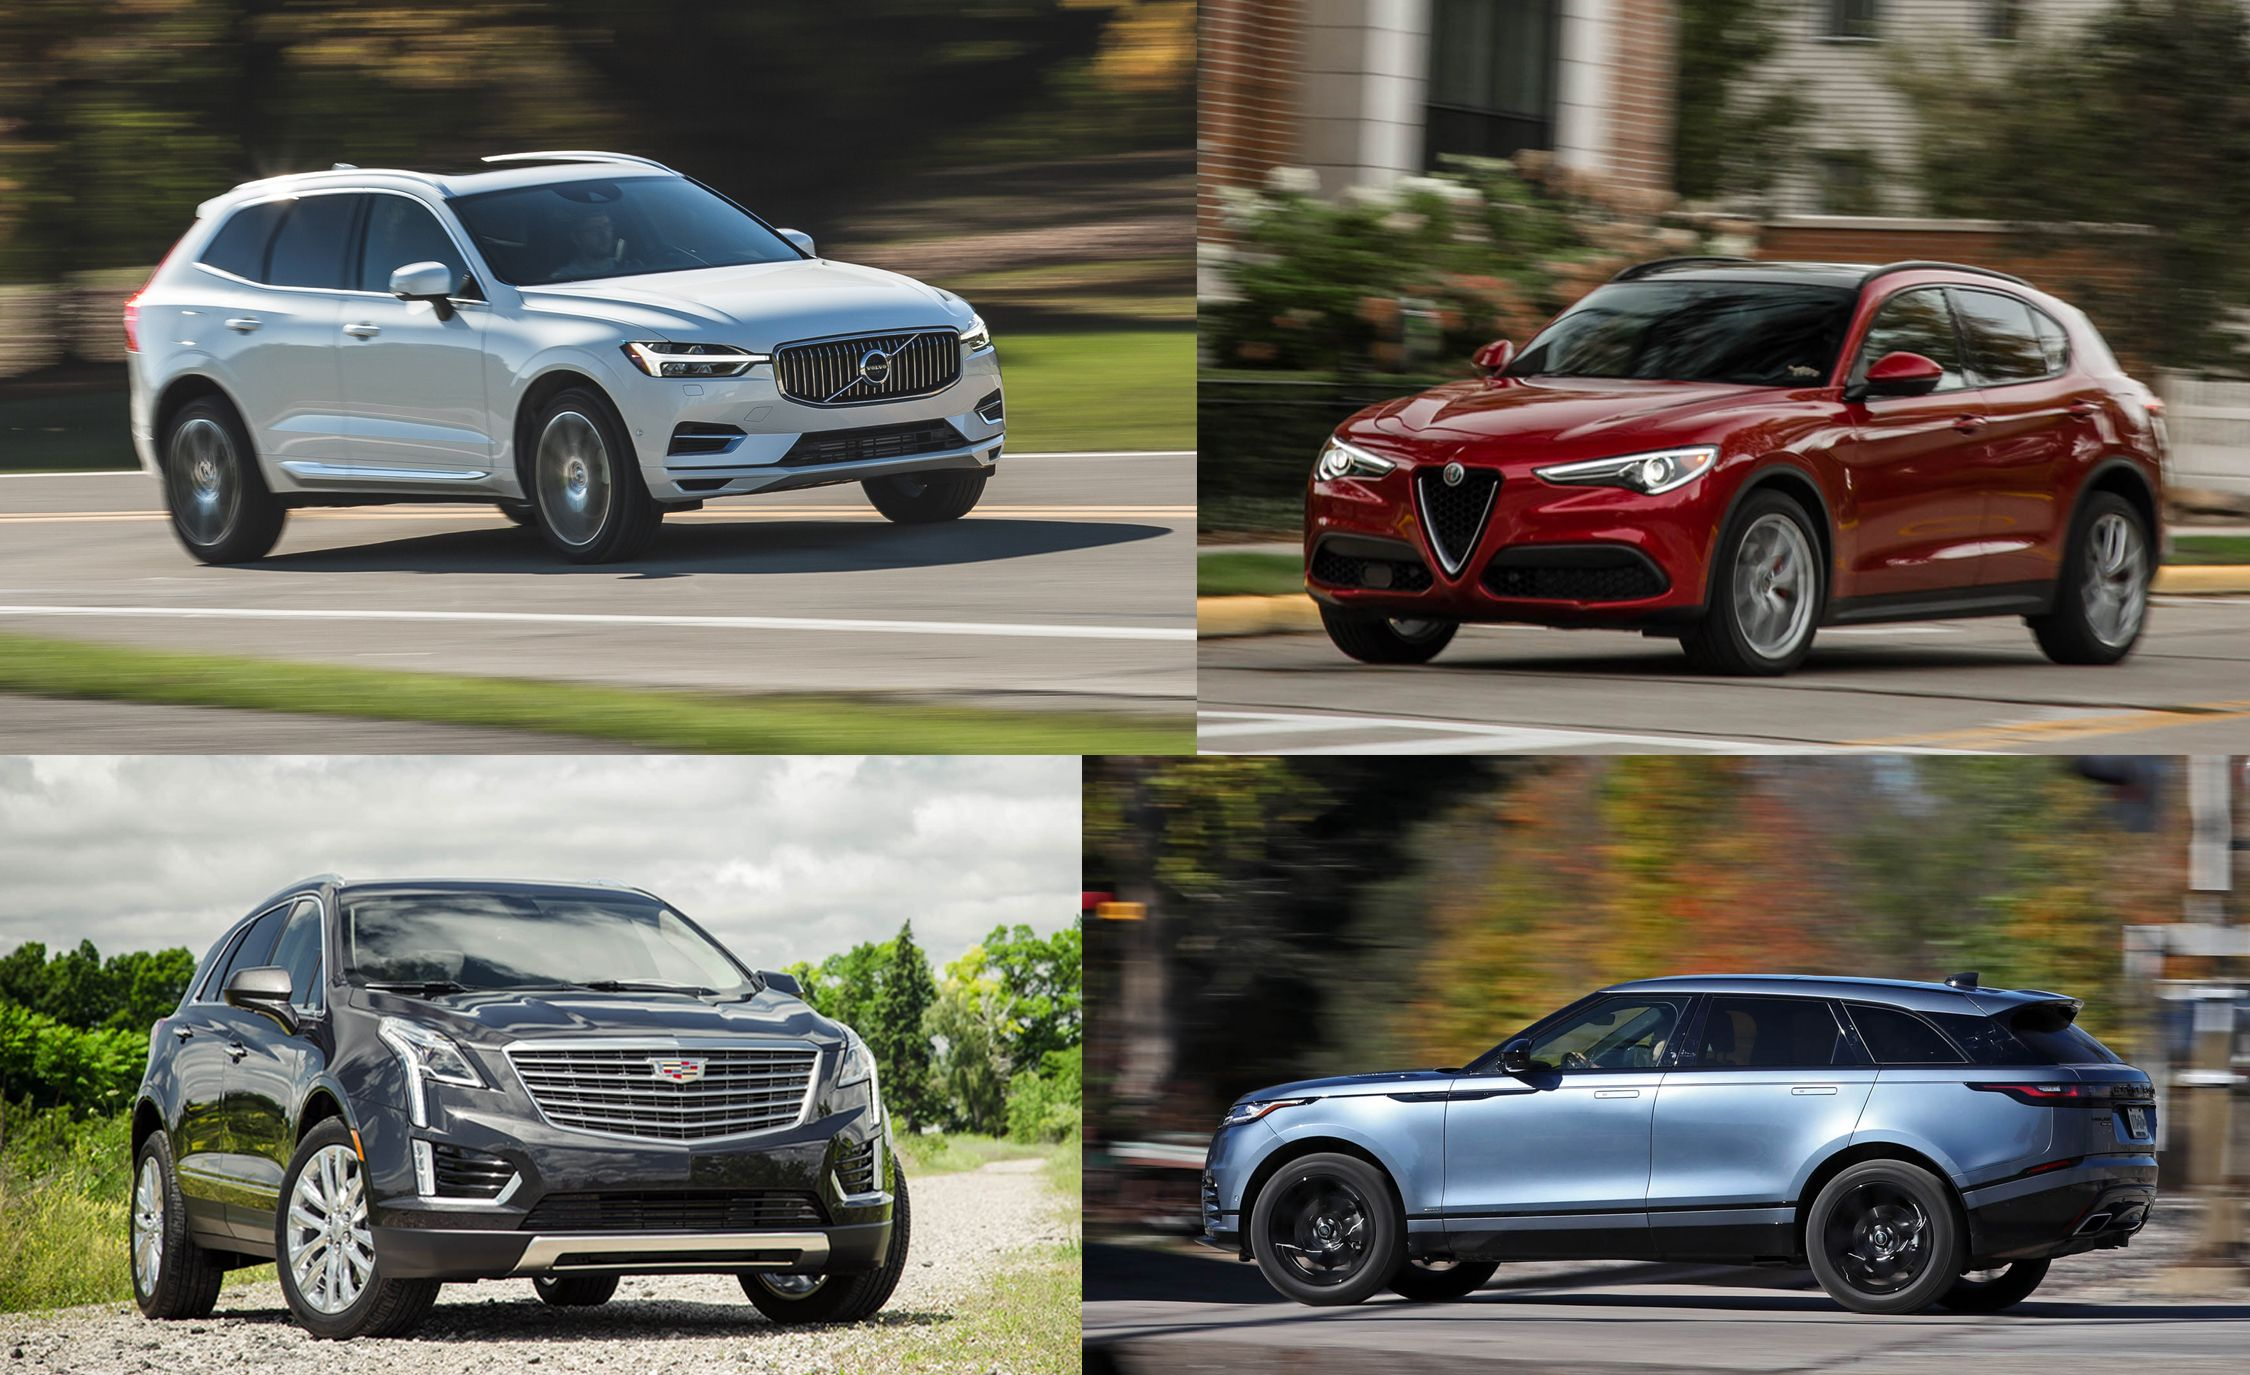 22 Luxury Small SUVs - Best Compact Luxury Crossovers, Ranked